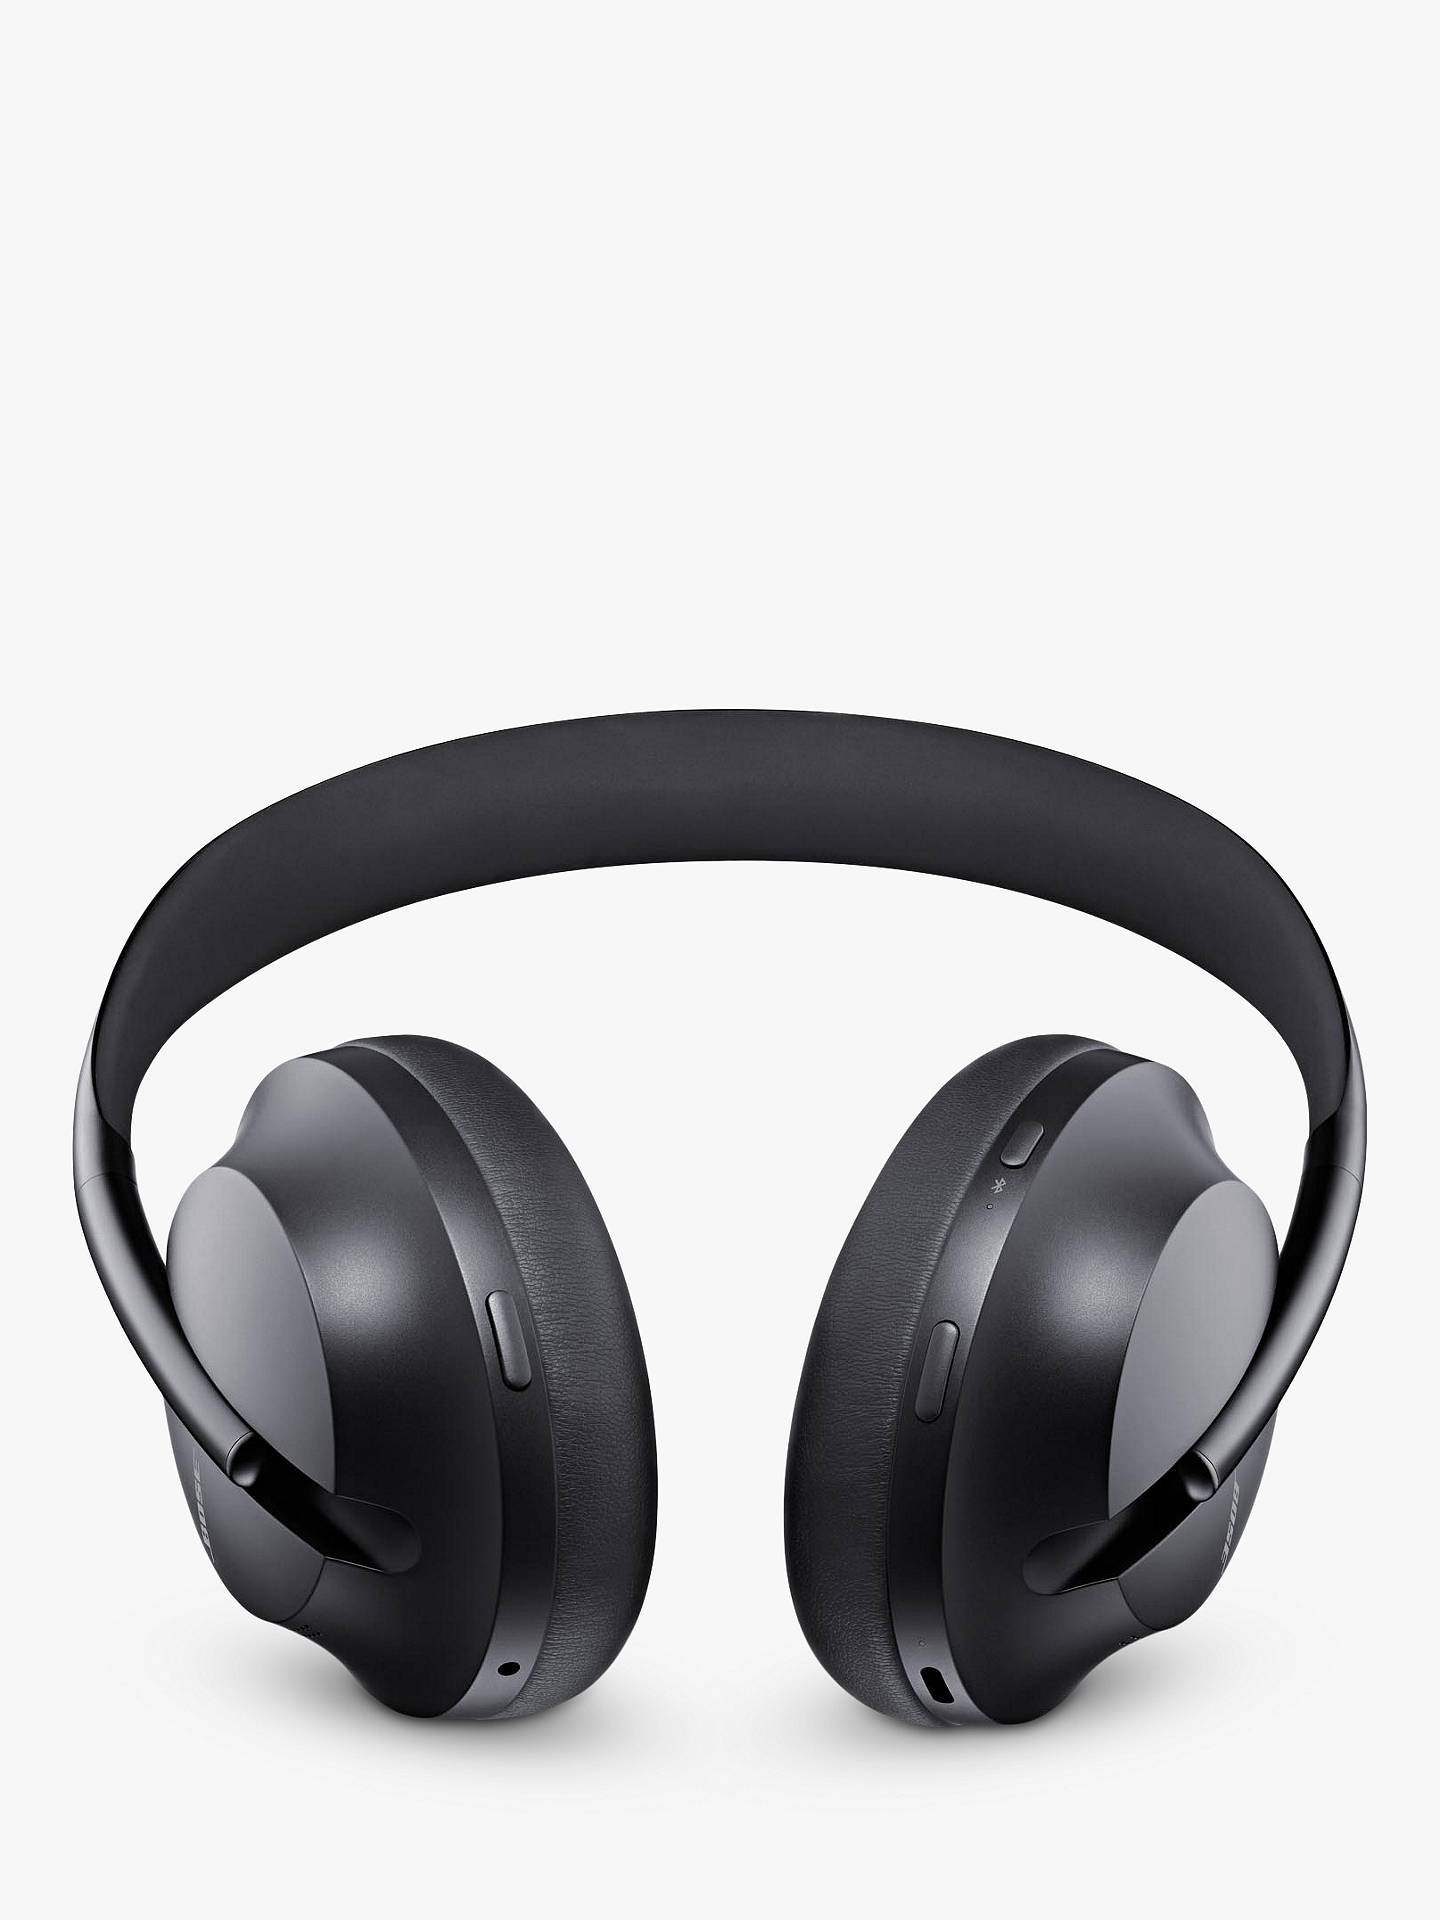 Buy Bose® 700 Noise Cancelling Over-Ear Wireless Bluetooth Headphones with Mic/Remote, Black Online at johnlewis.com